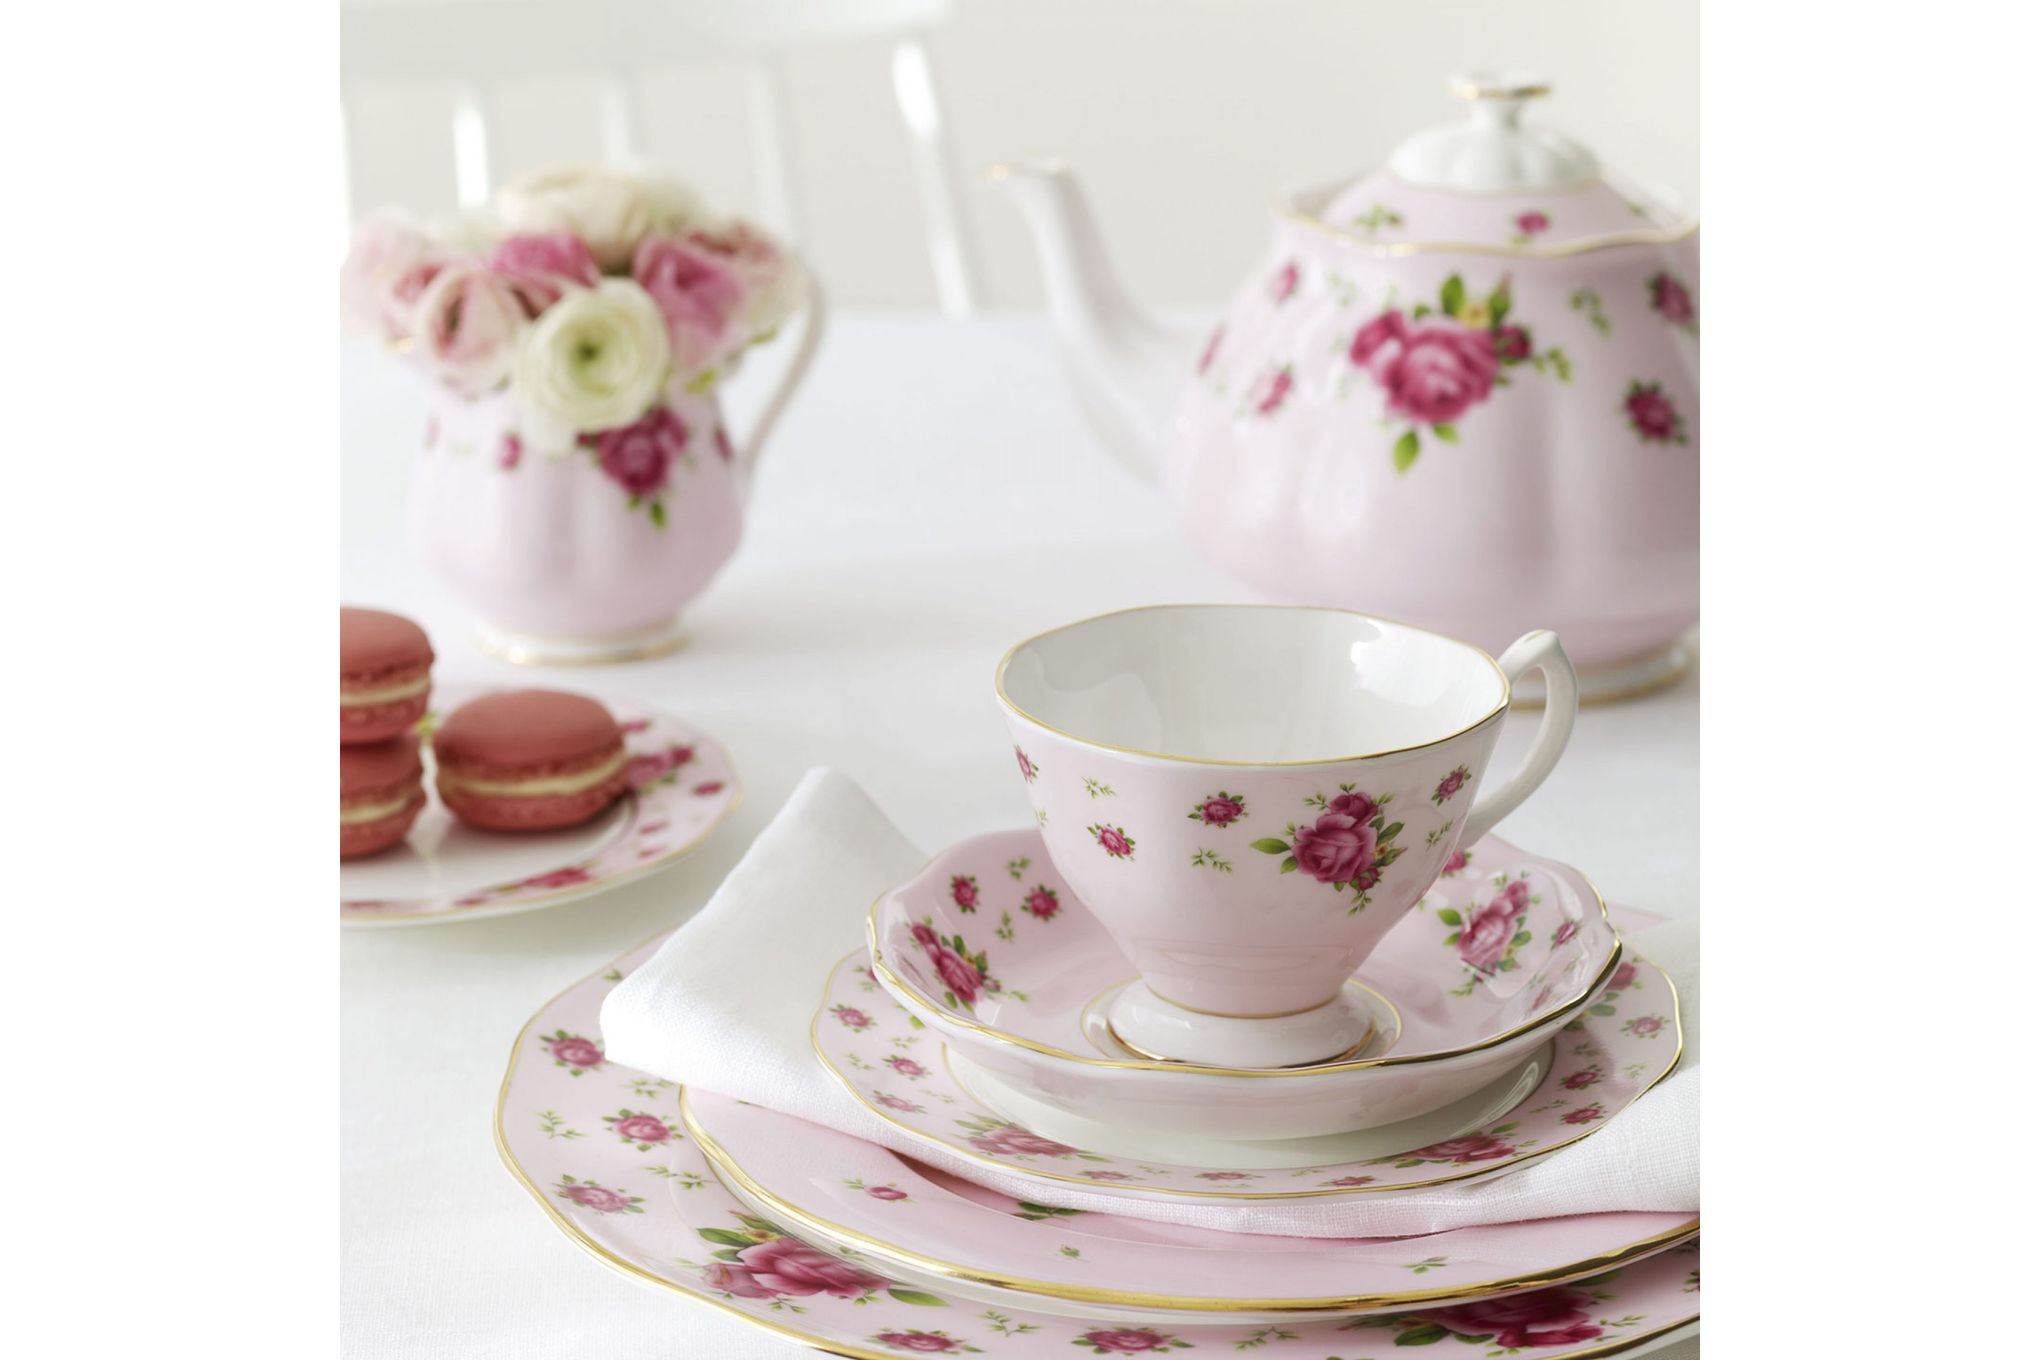 Royal Albert New Country Roses Pink Teacup & Saucer Boxed thumb 3